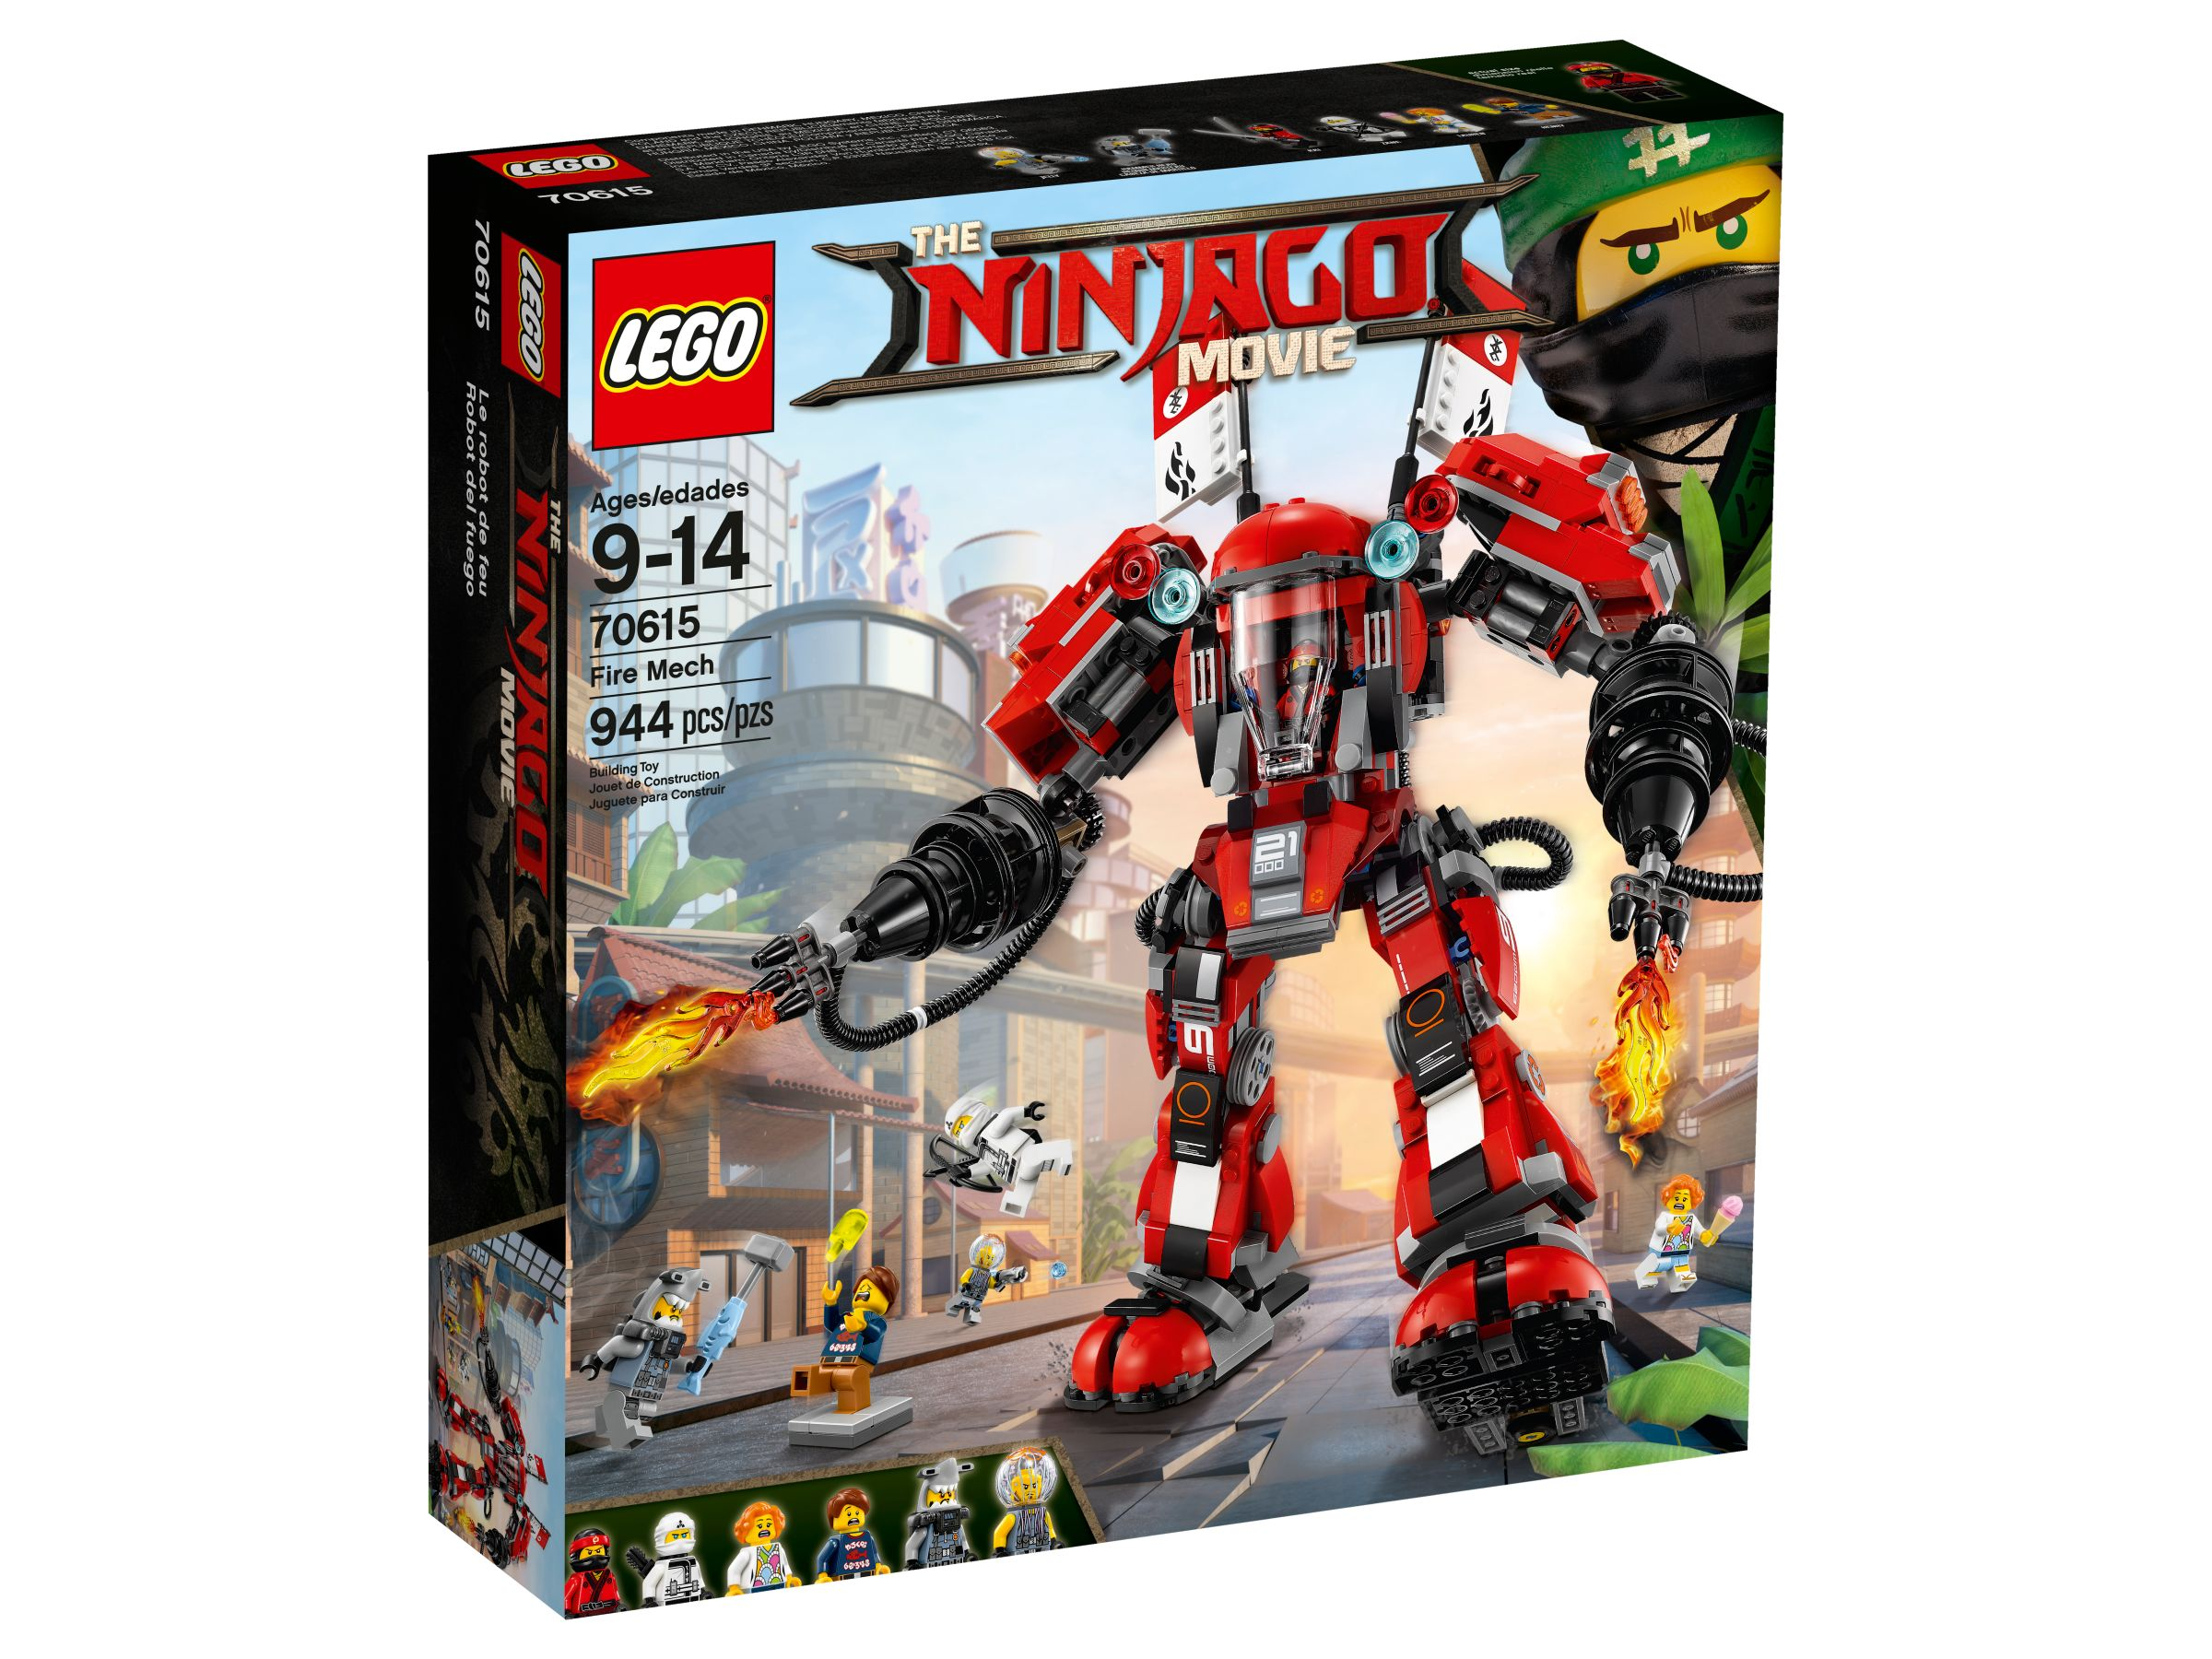 LEGO The LEGO Ninjago Movie 70615 Kai's Feuer-Mech LEGO_70615_alt1.jpg